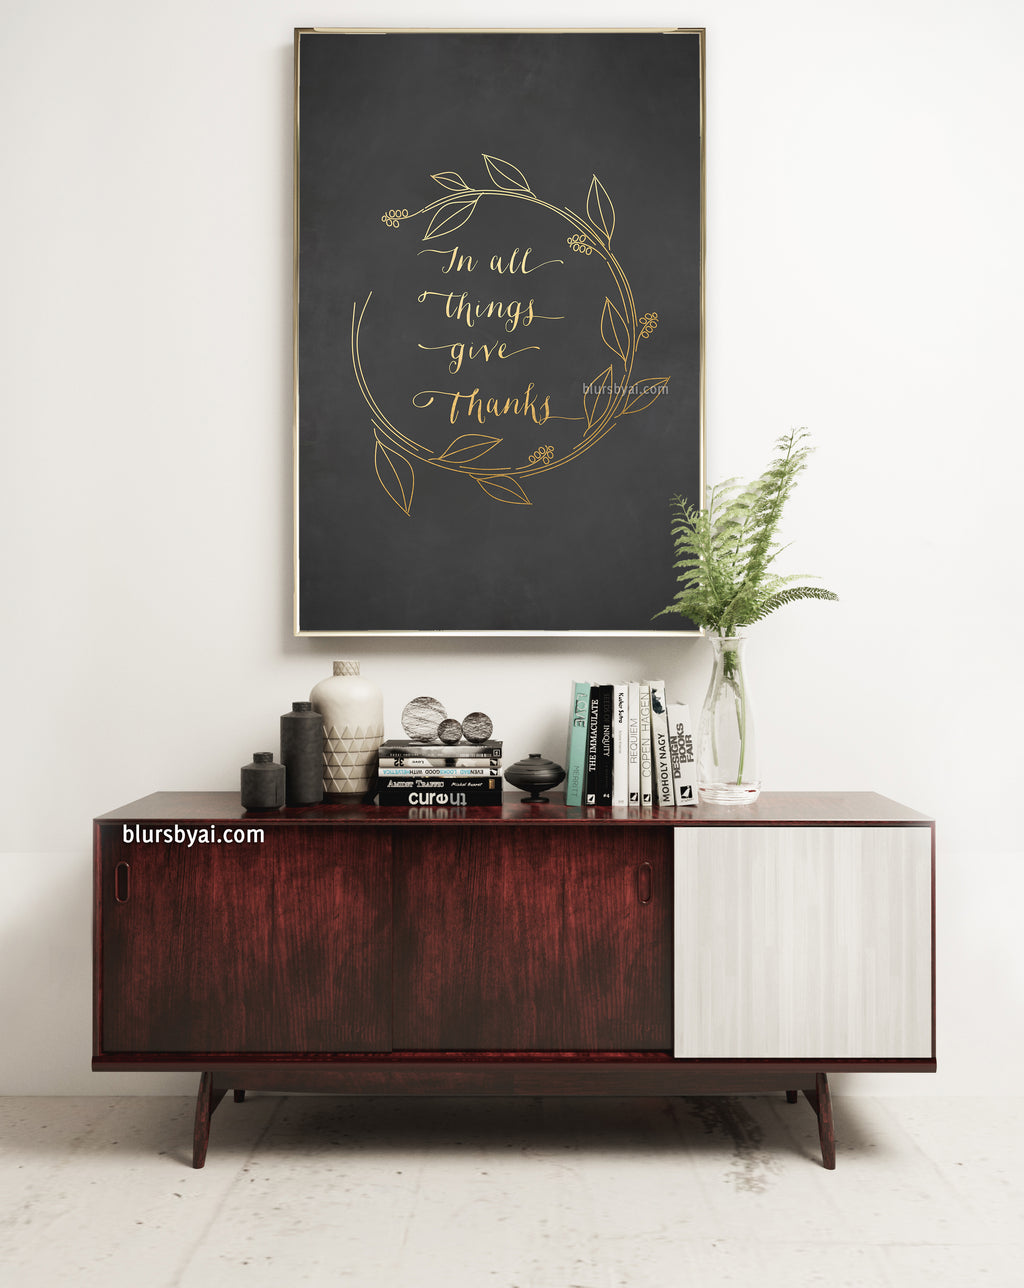 In all things give thanks, gold/white and chalkboard quote print